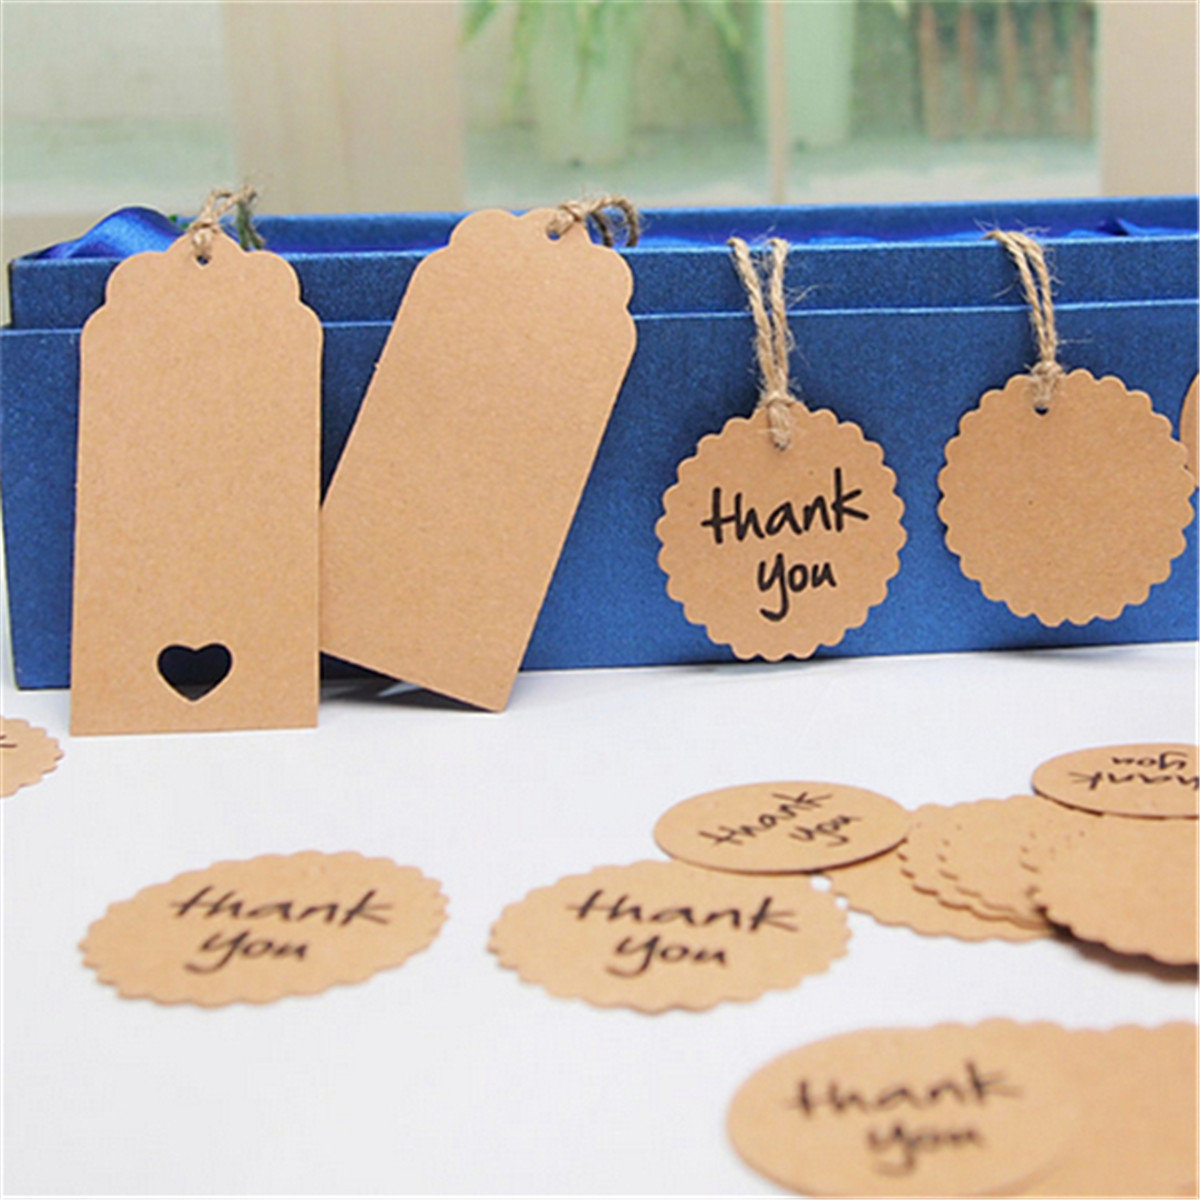 Wedding Favors Tags Singapore : ... Tags Brown Wedding Party Favor Gift Label + Strings Lazada Singapore